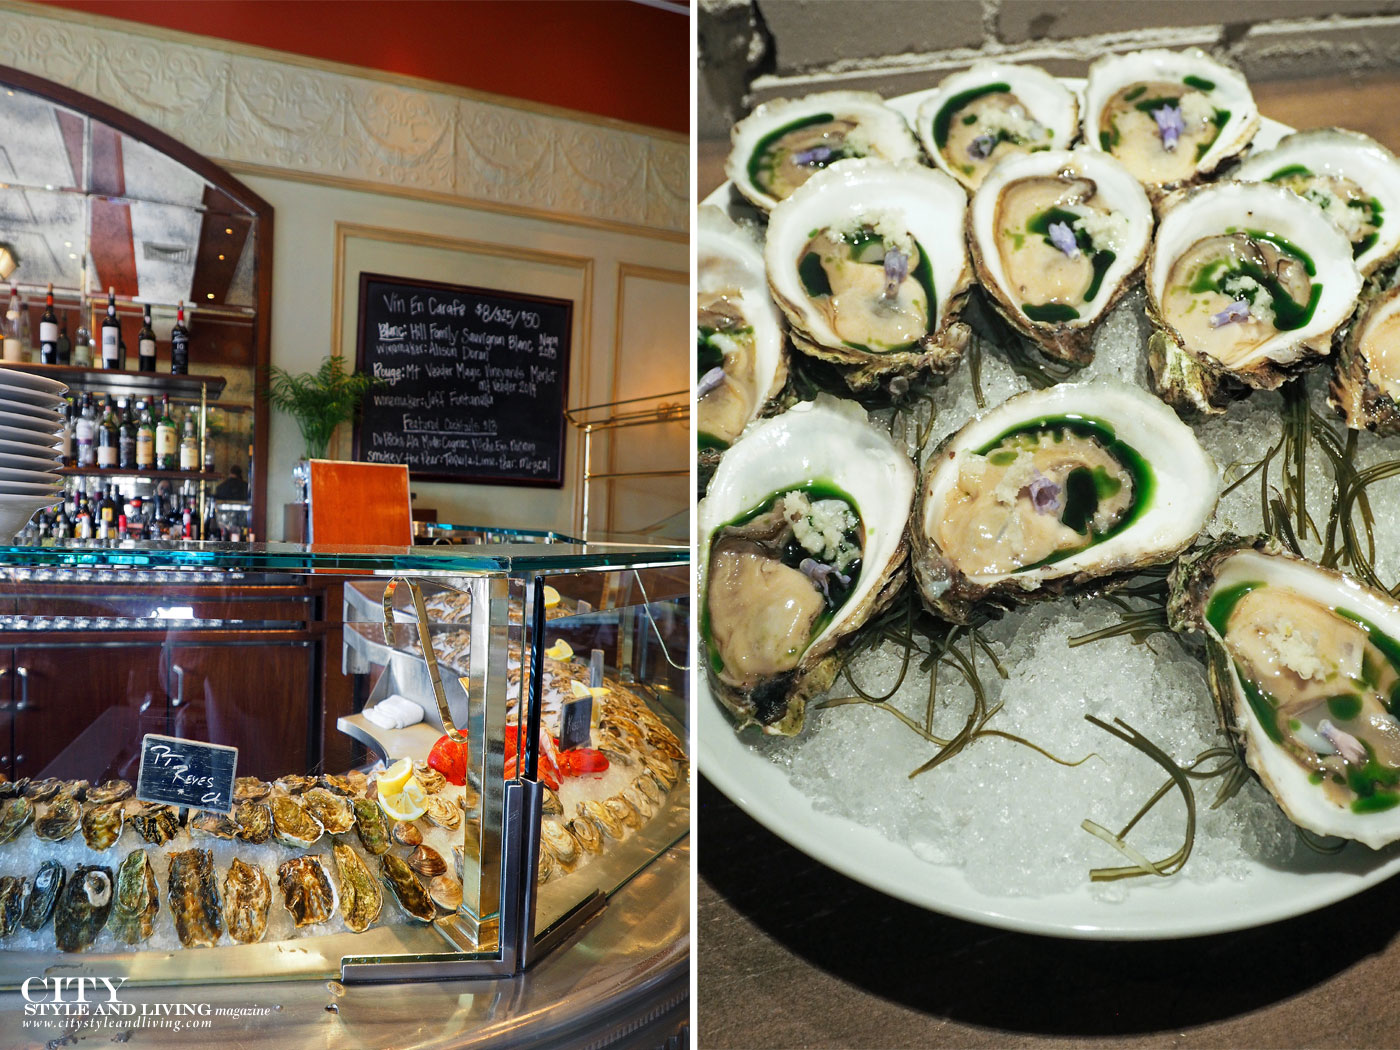 City Style and Living Magazine Oyster Bar